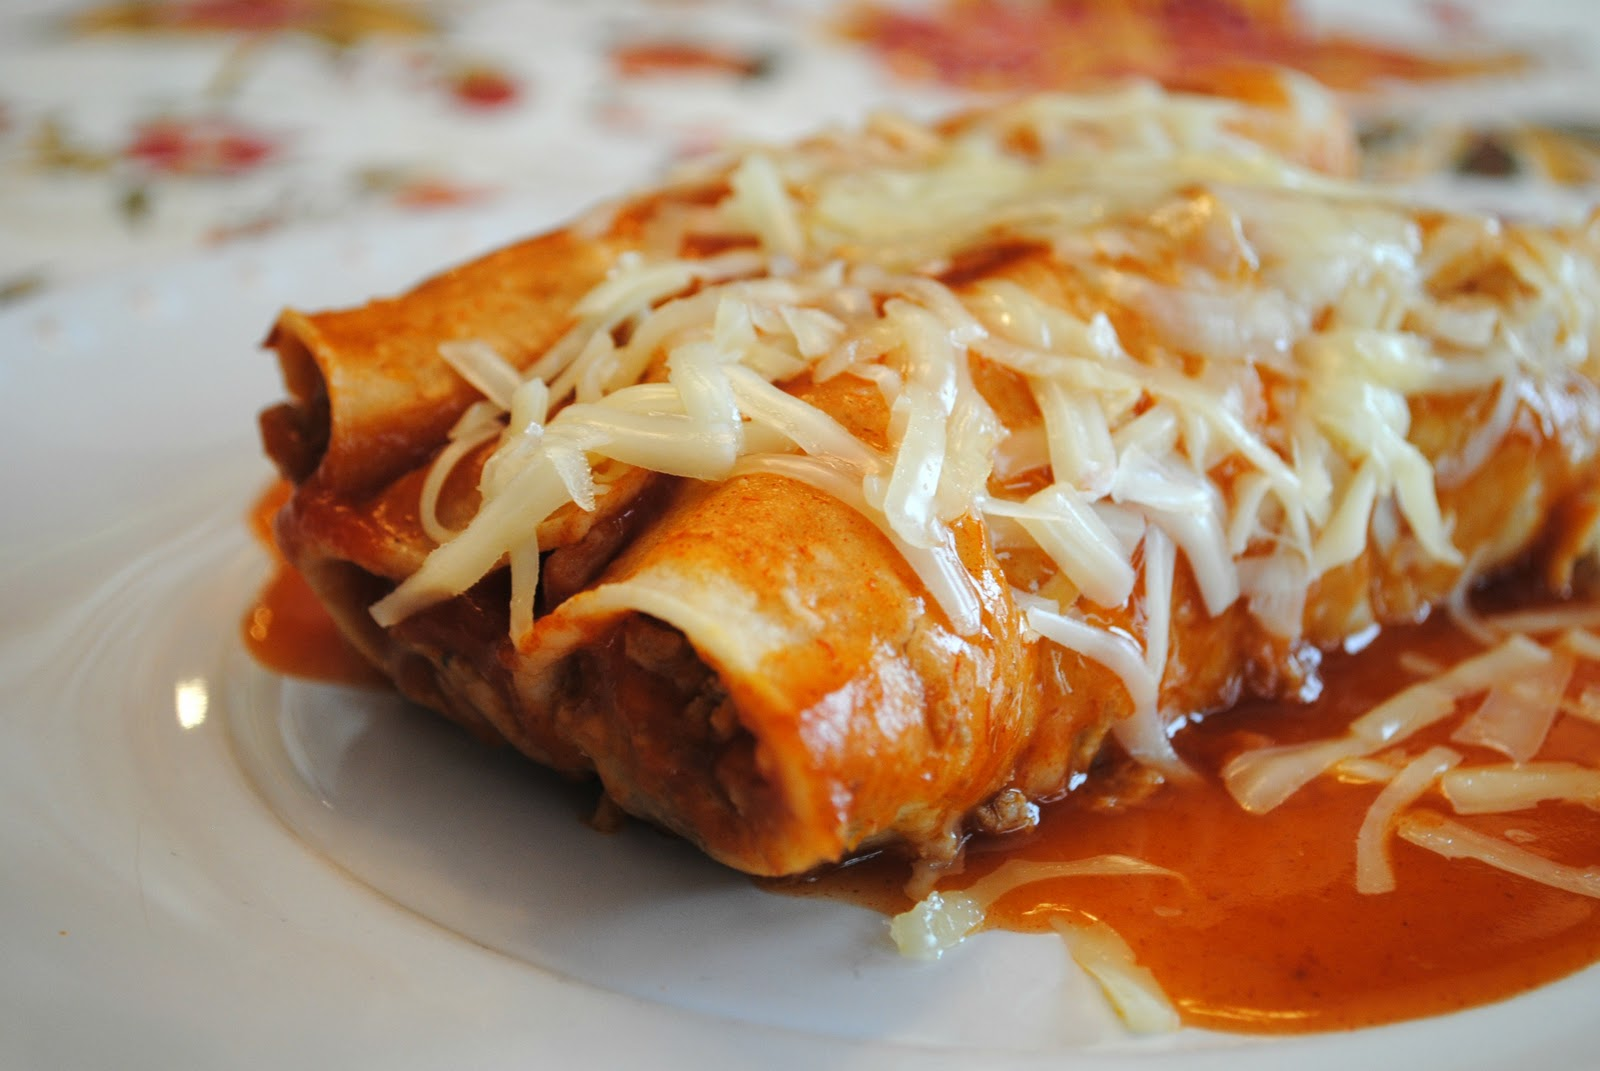 Living With Imperfection: Quick Turkey Enchiladas